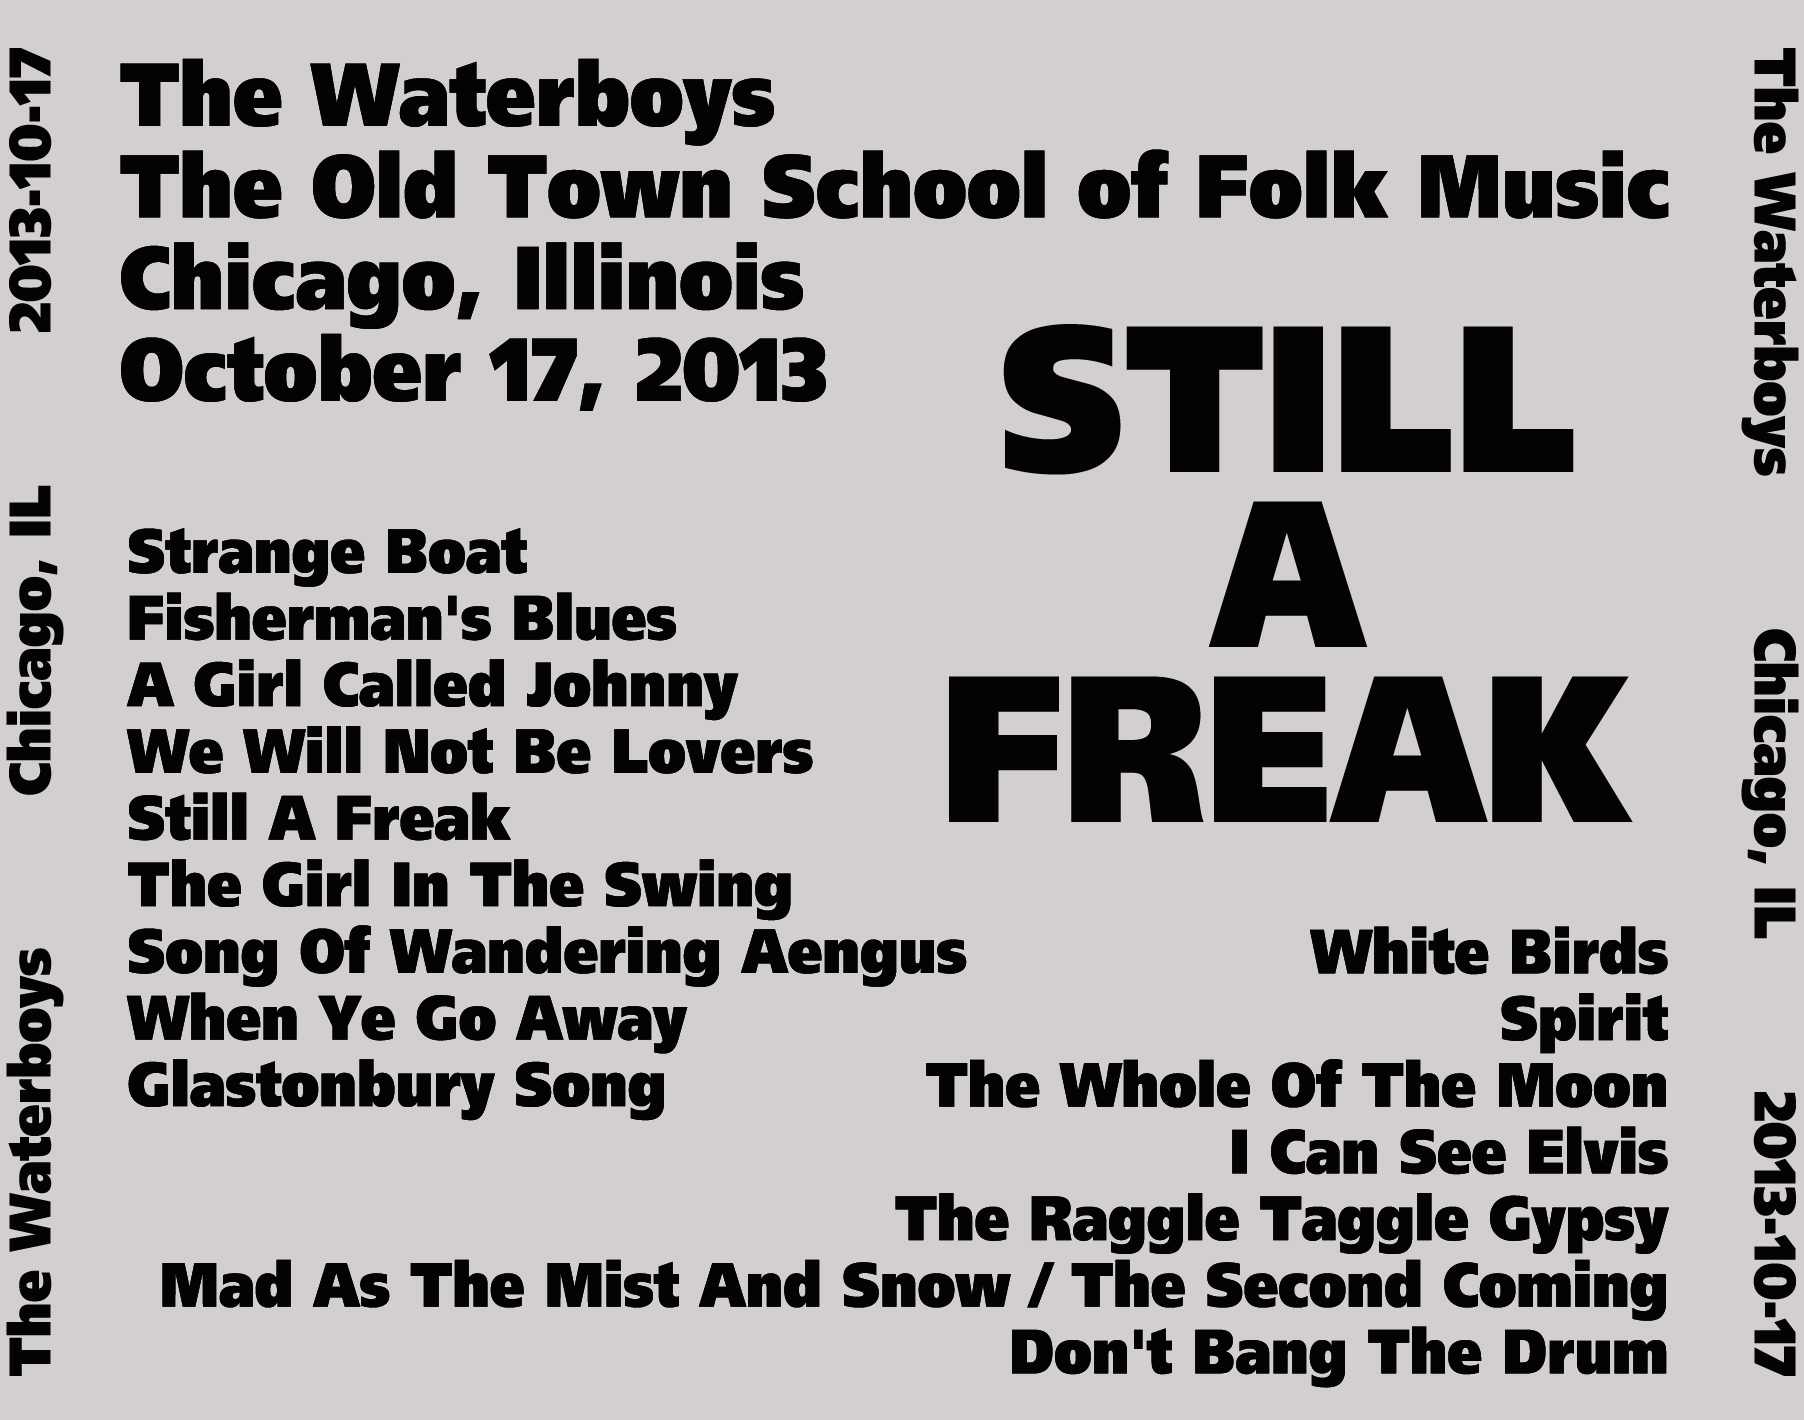 Waterboys2013-10-17LateOldTownSchoolOfFolkMusicChicagoIL.png